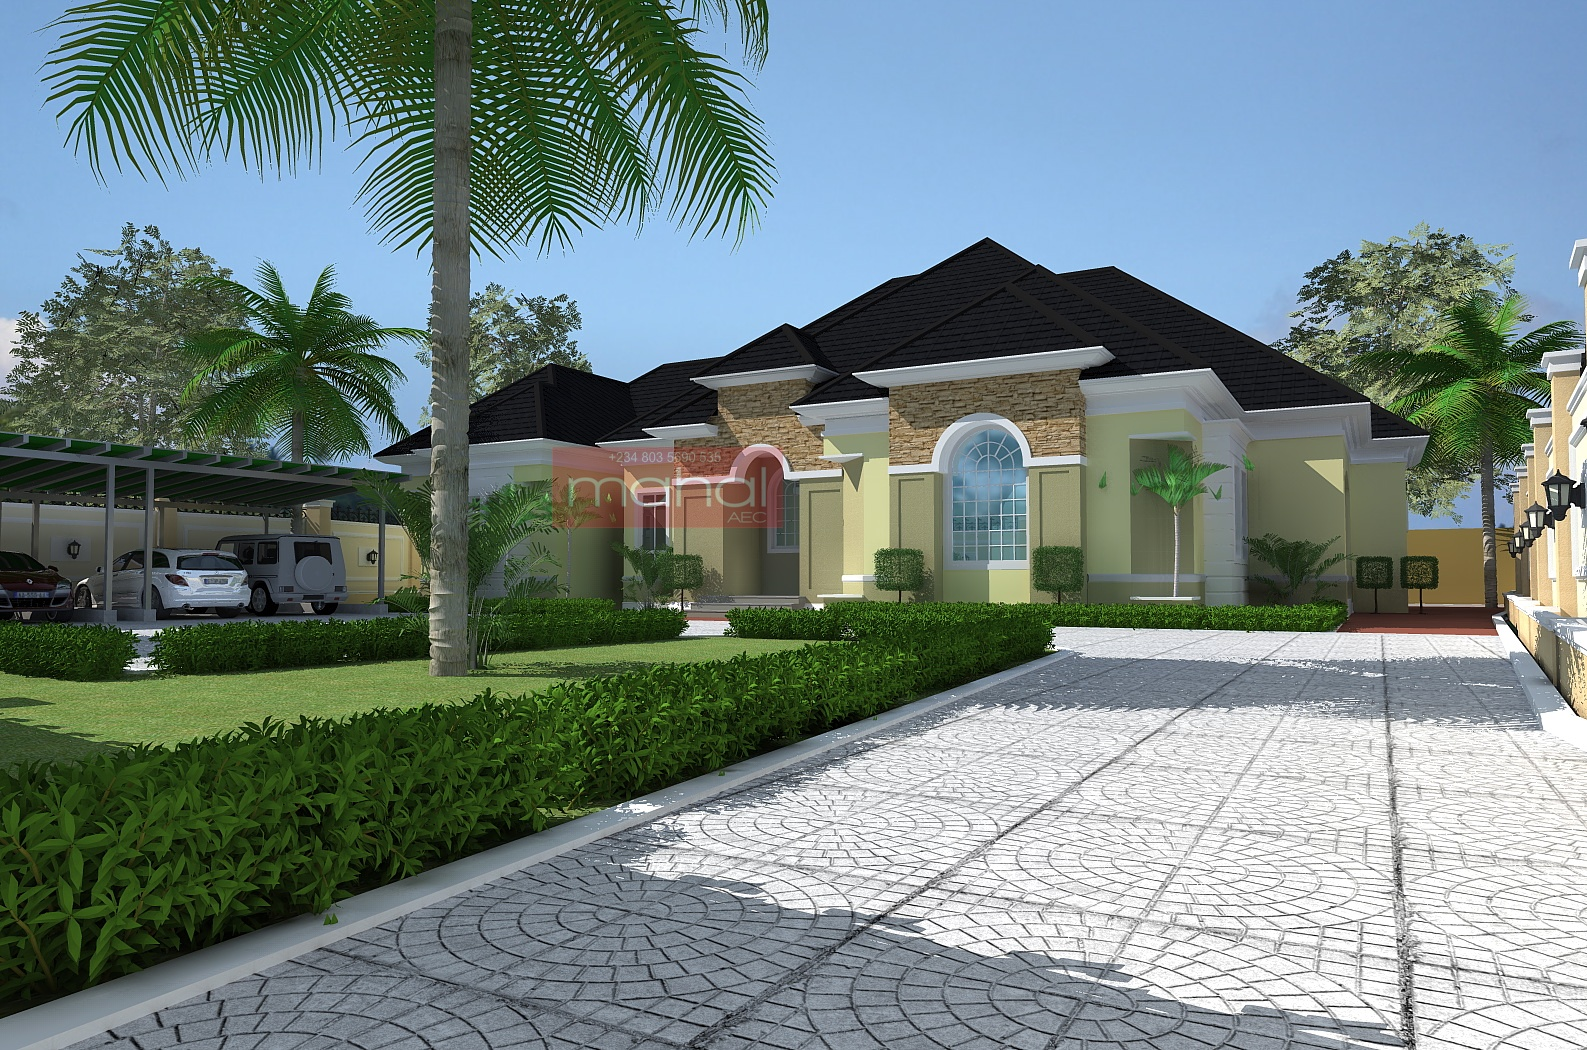 Luxury Bungalow Designs In Nigeria Ideasidea